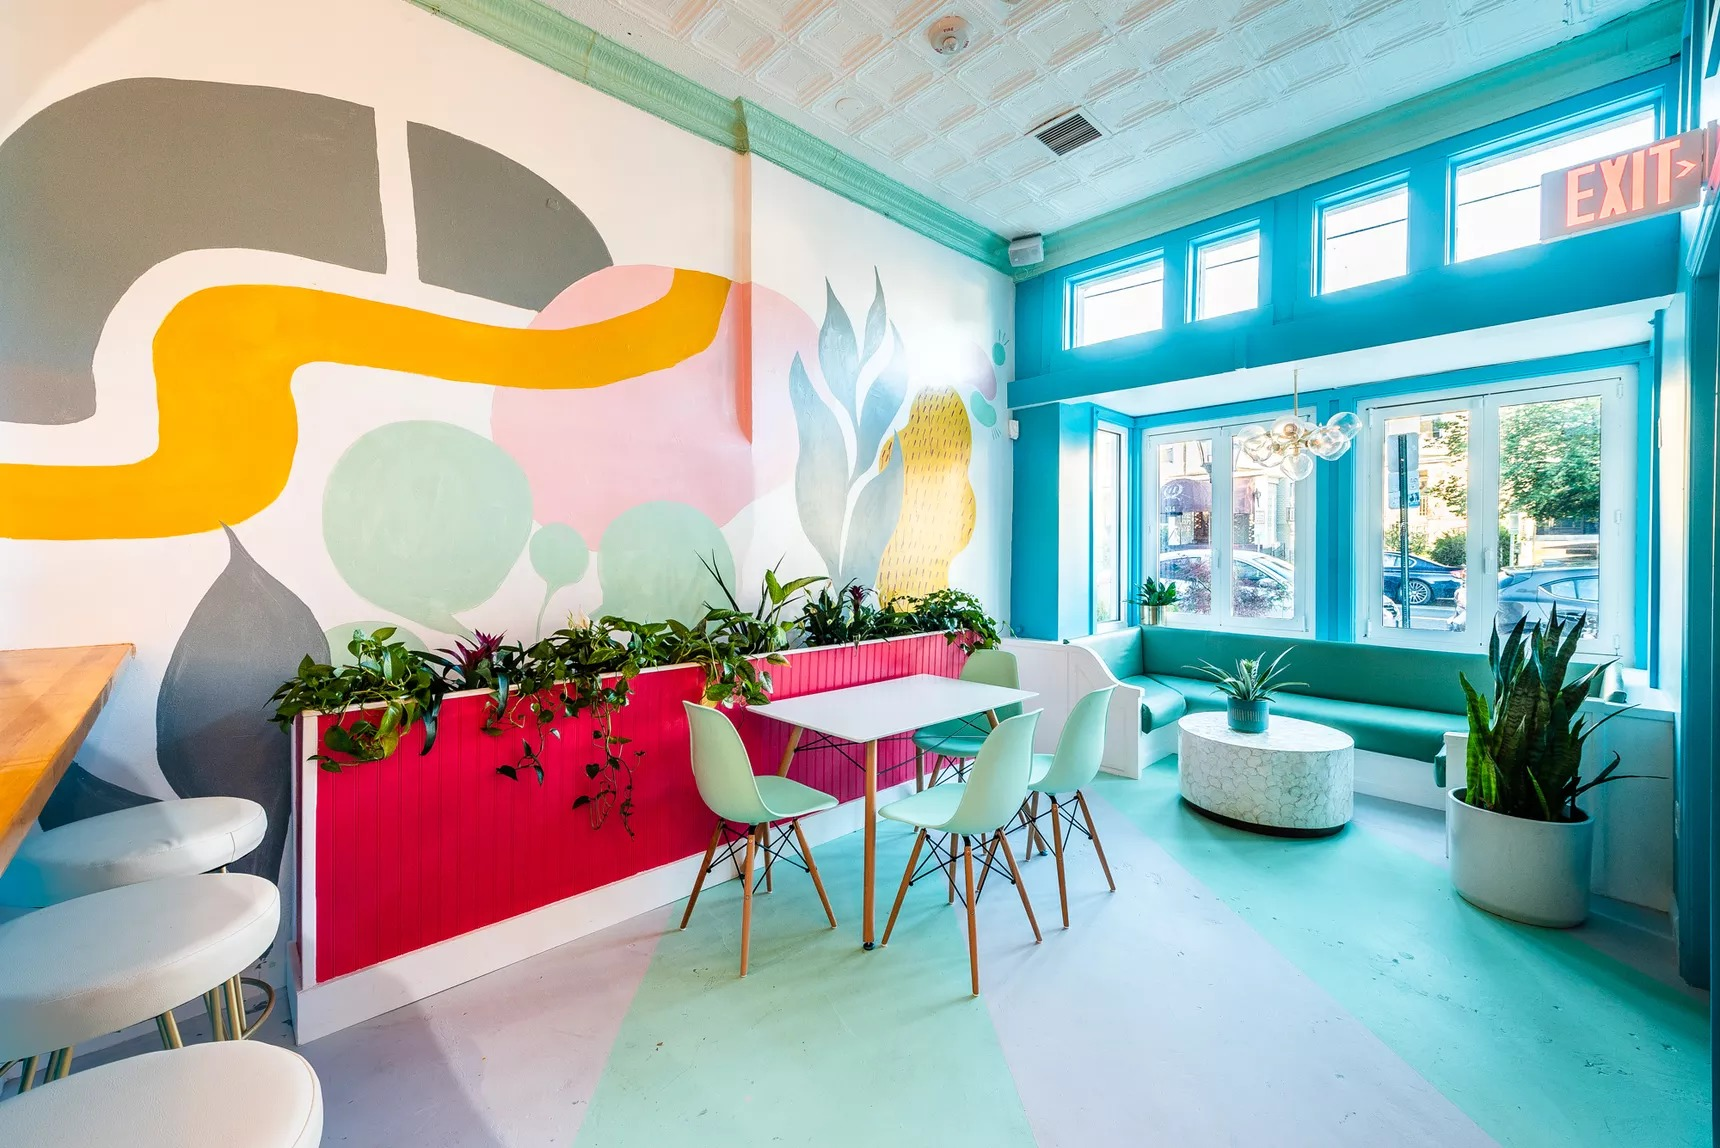 A dining room with a mural on one wall featuring gray shapes, a long yellow shape, a sea foam green circle, and a pink circle, plus stools along one wall and a table and chairs in the center